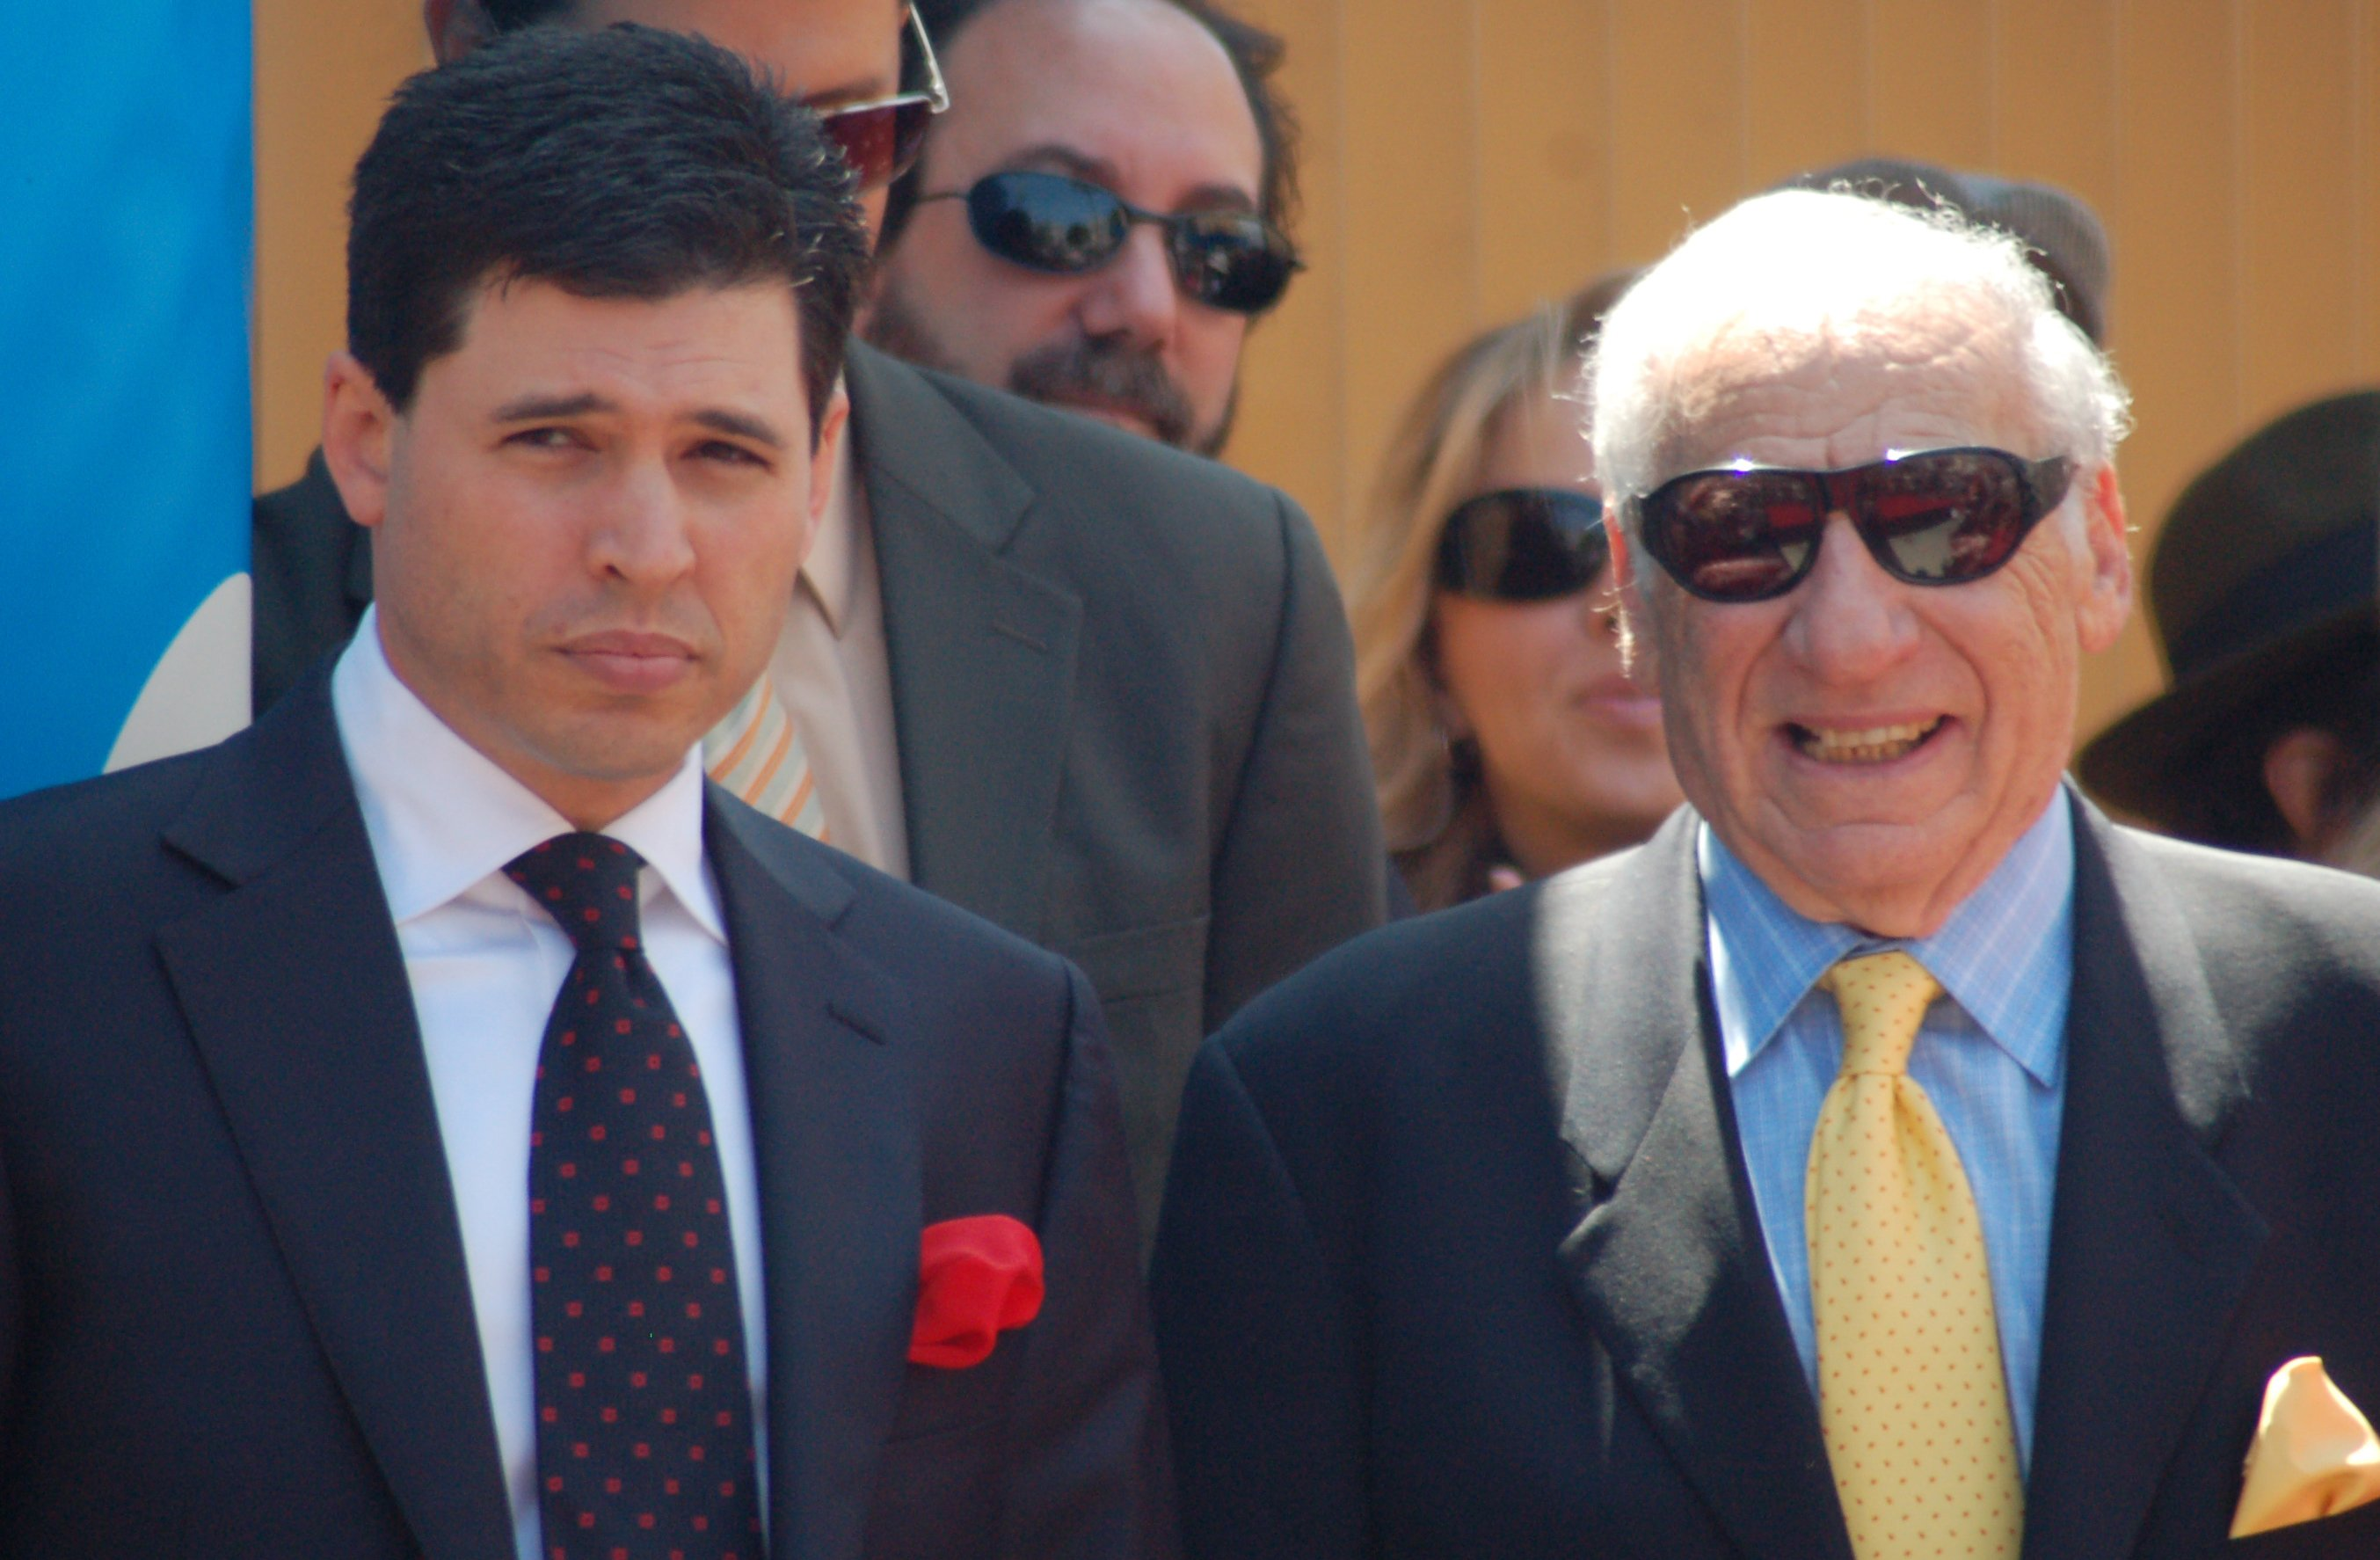 Max and Mel Brooks at a ceremony for Mel to receive a star on the Hollywood Walk of Fame on 23 April 2010. | Source: Wikimedia Commons